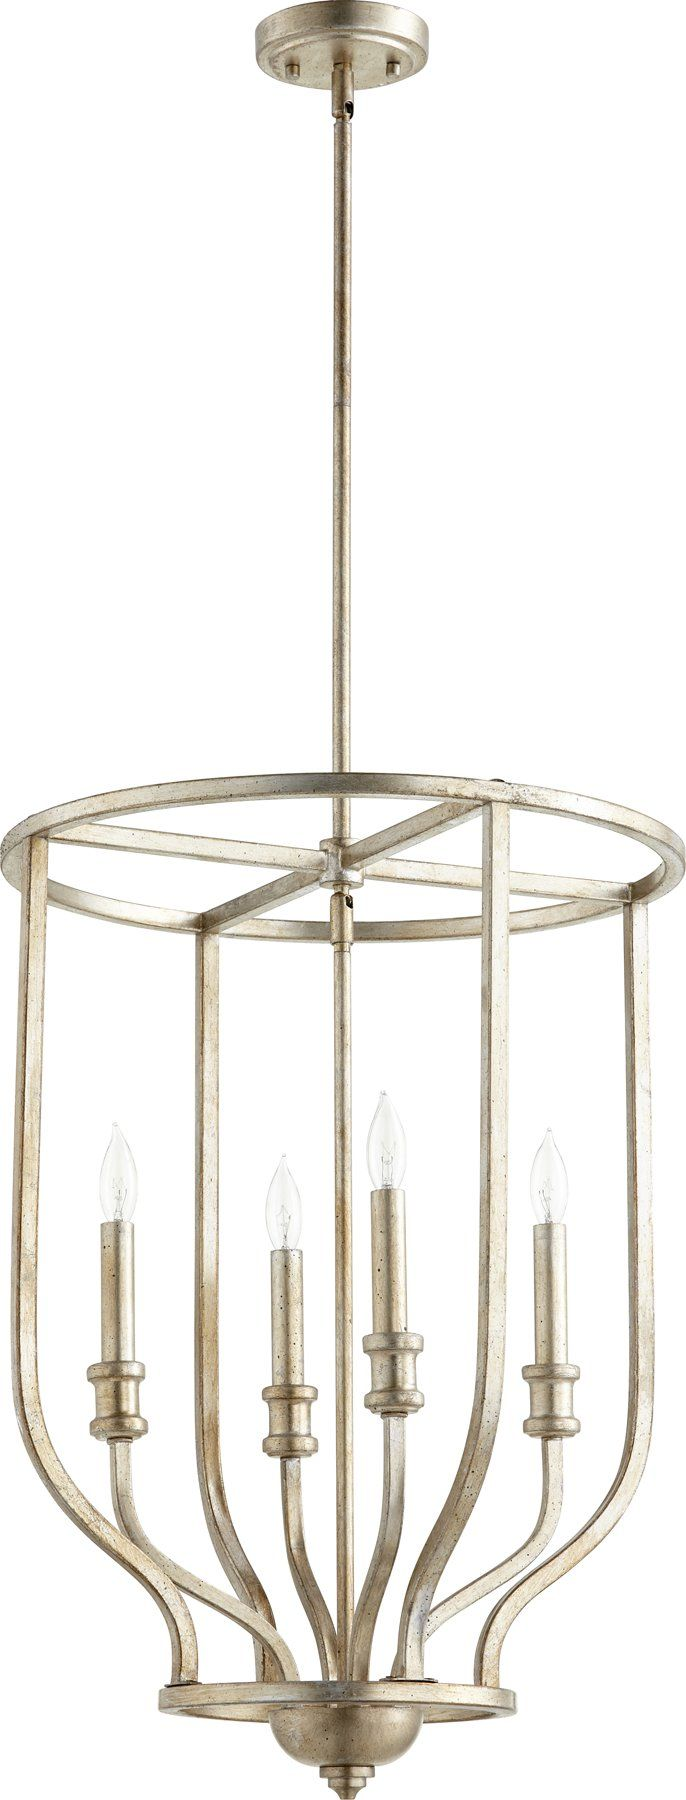 Richmond entry light foyer pendant pendants and products